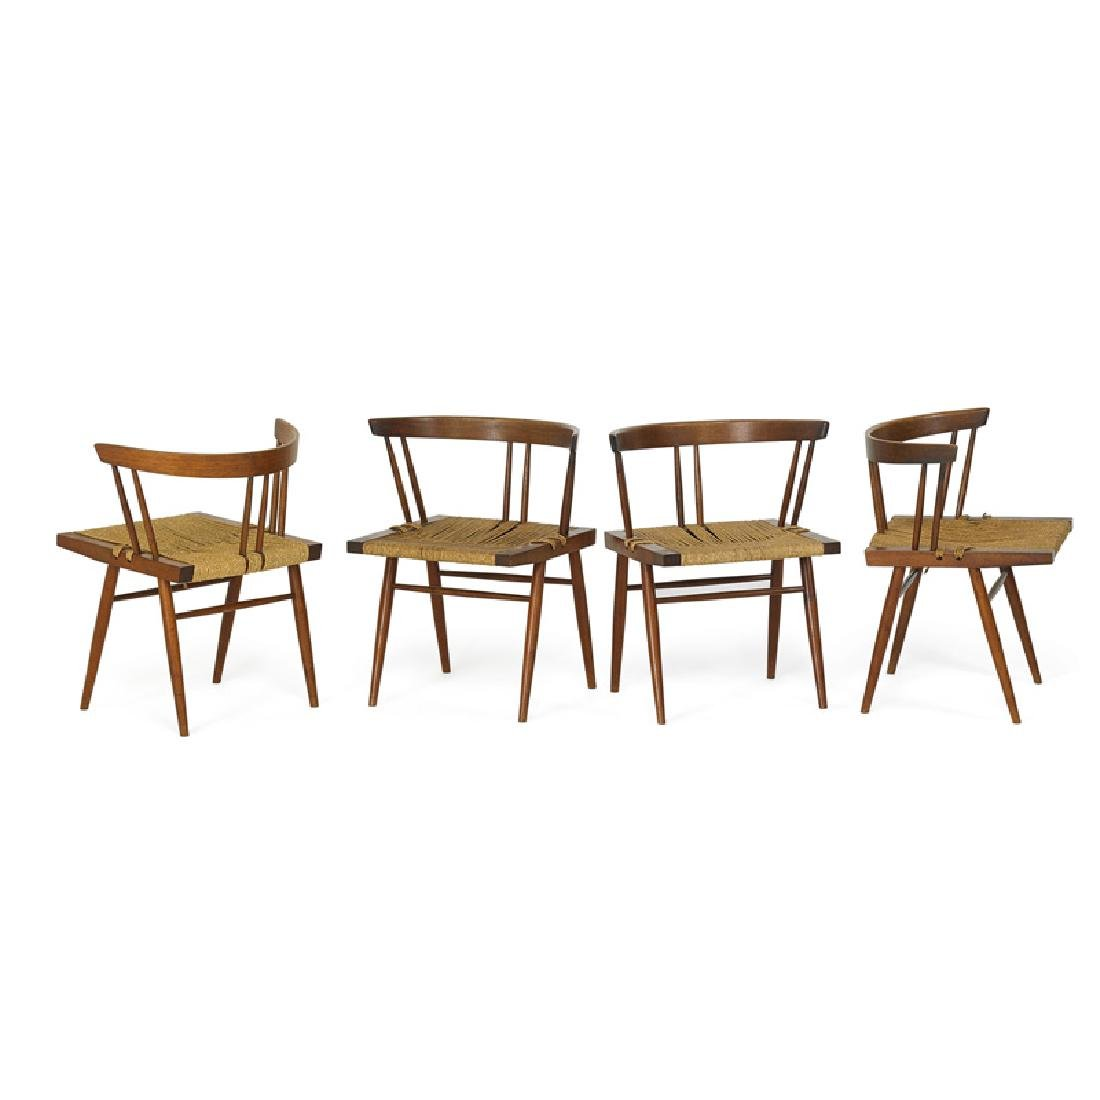 GEORGE NAKASHIMA Set of four Grass-seated chairs